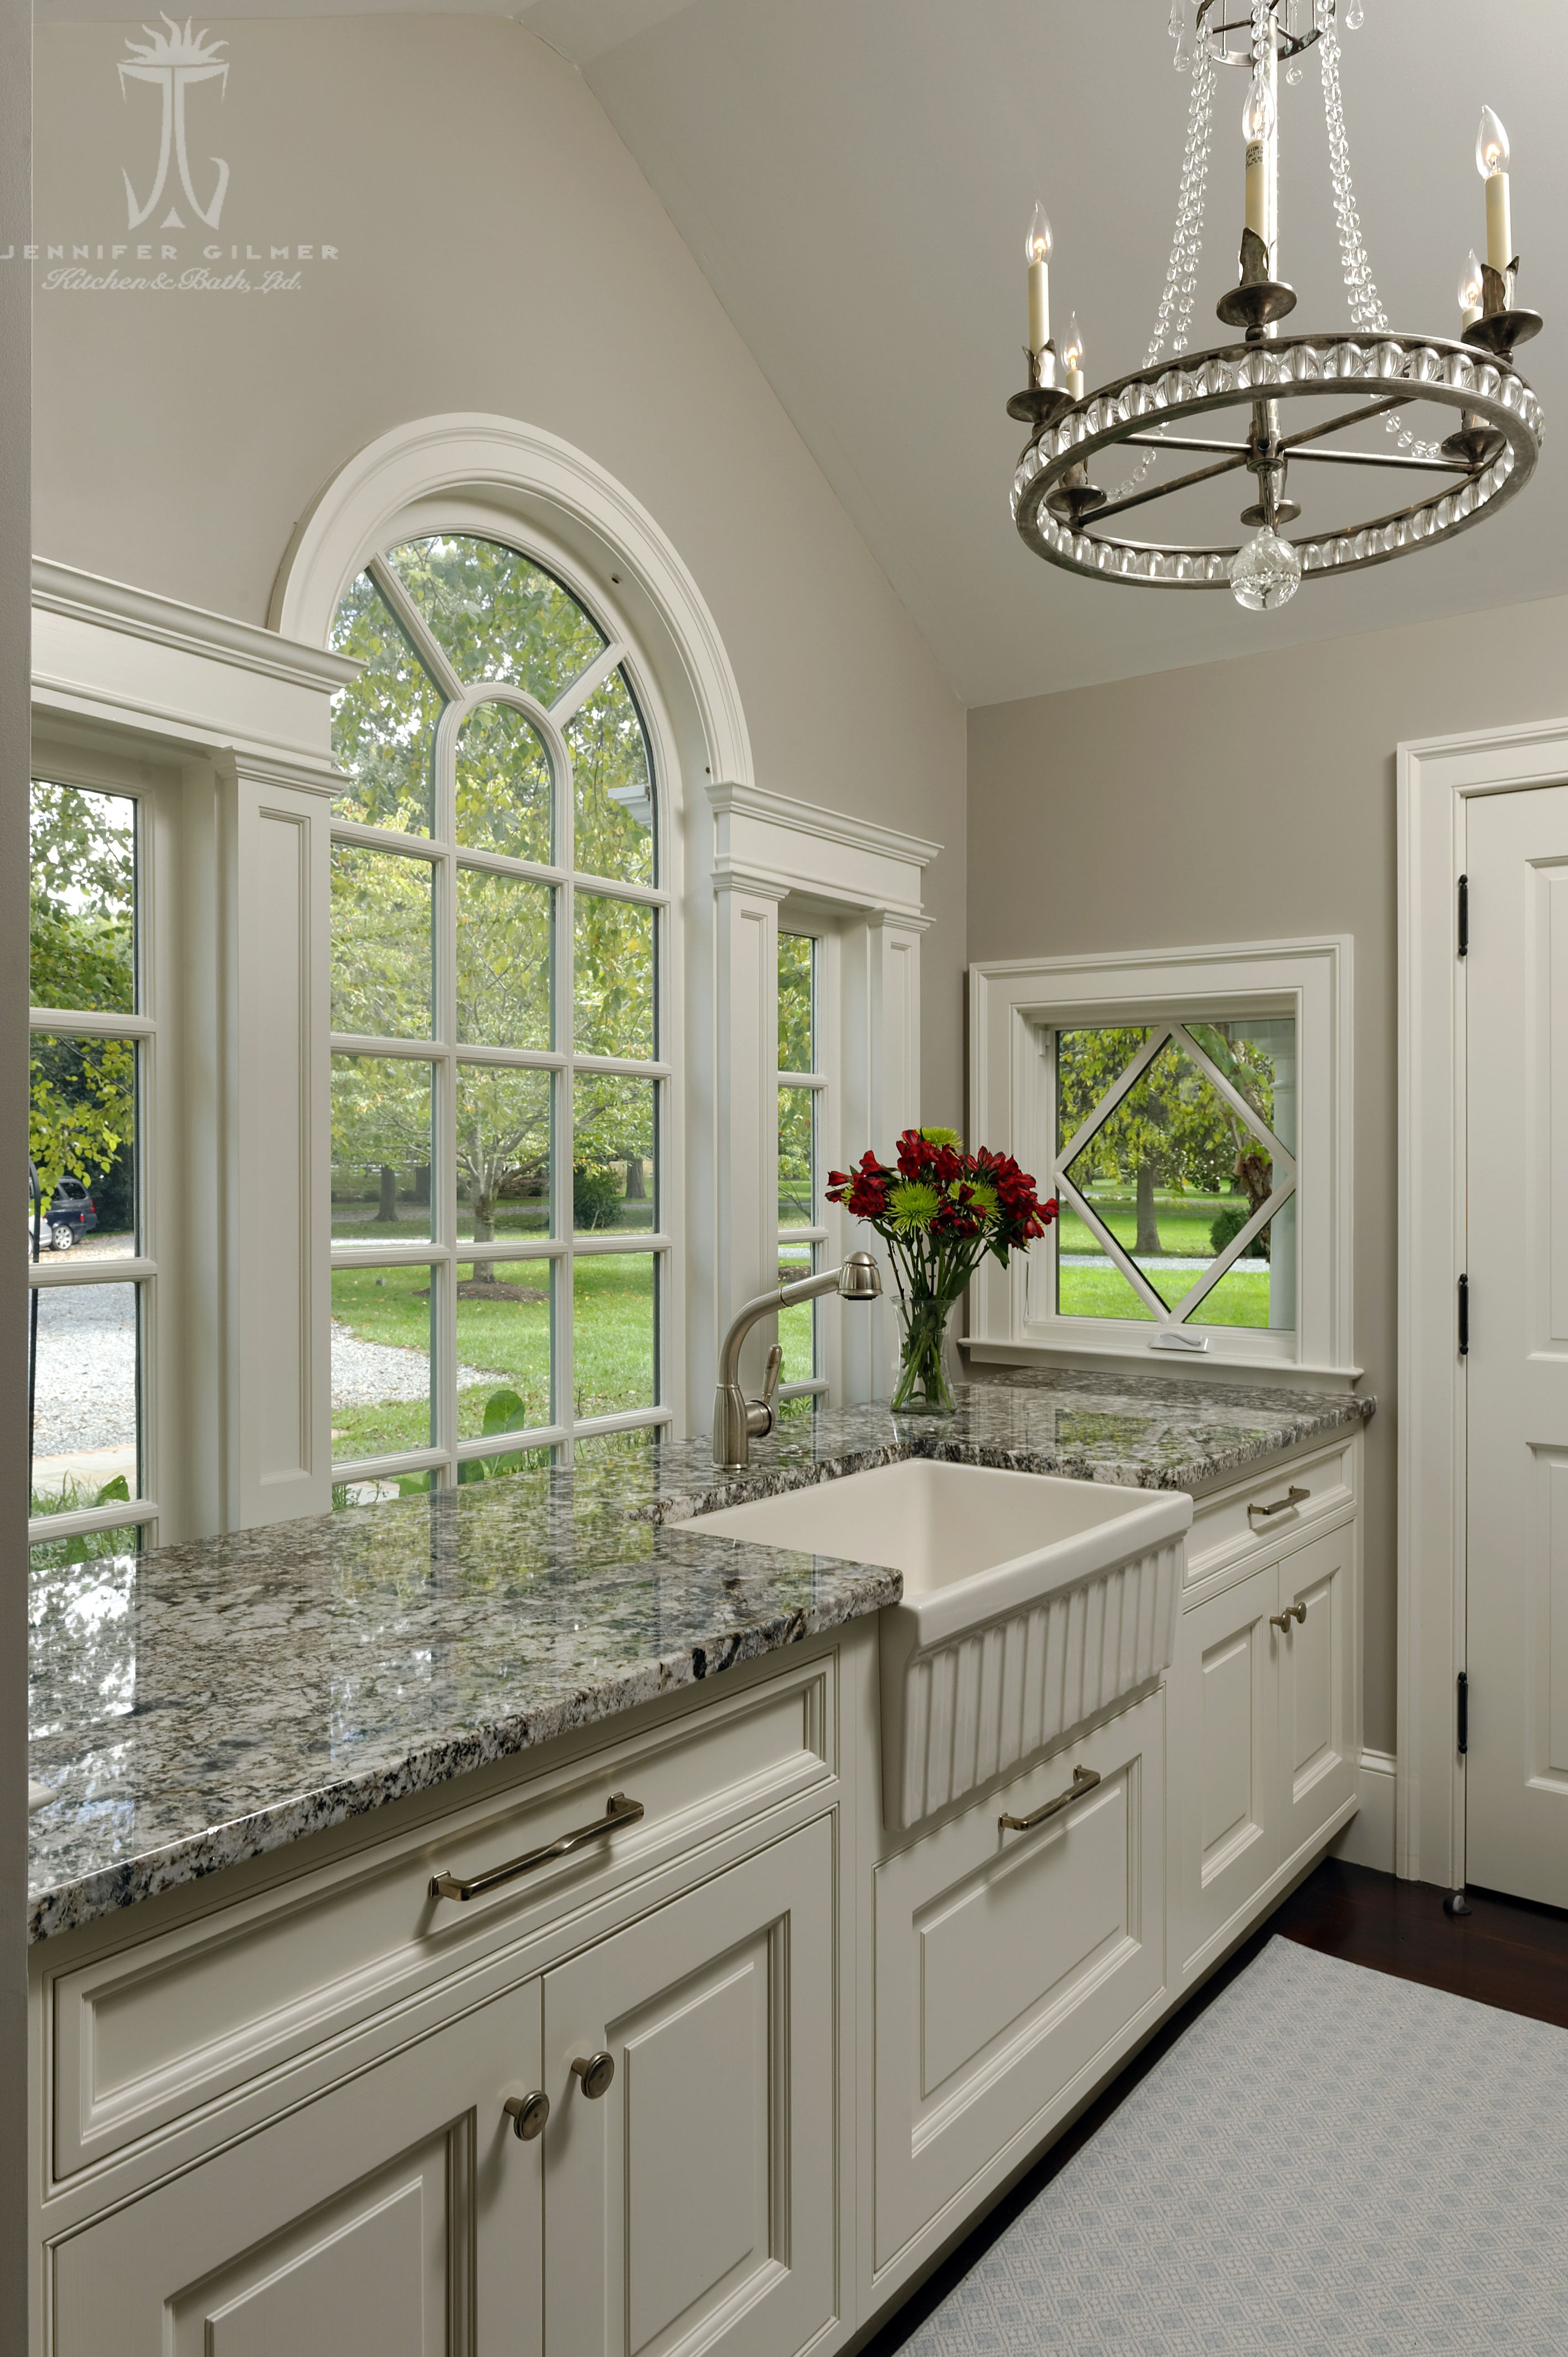 The Butler S Pantry Offers Copious Countertop Space And Great Storage The Palladian Window Is Kitchen Bathroom Remodel Kitchen Remodel Kitchen And Bath Design